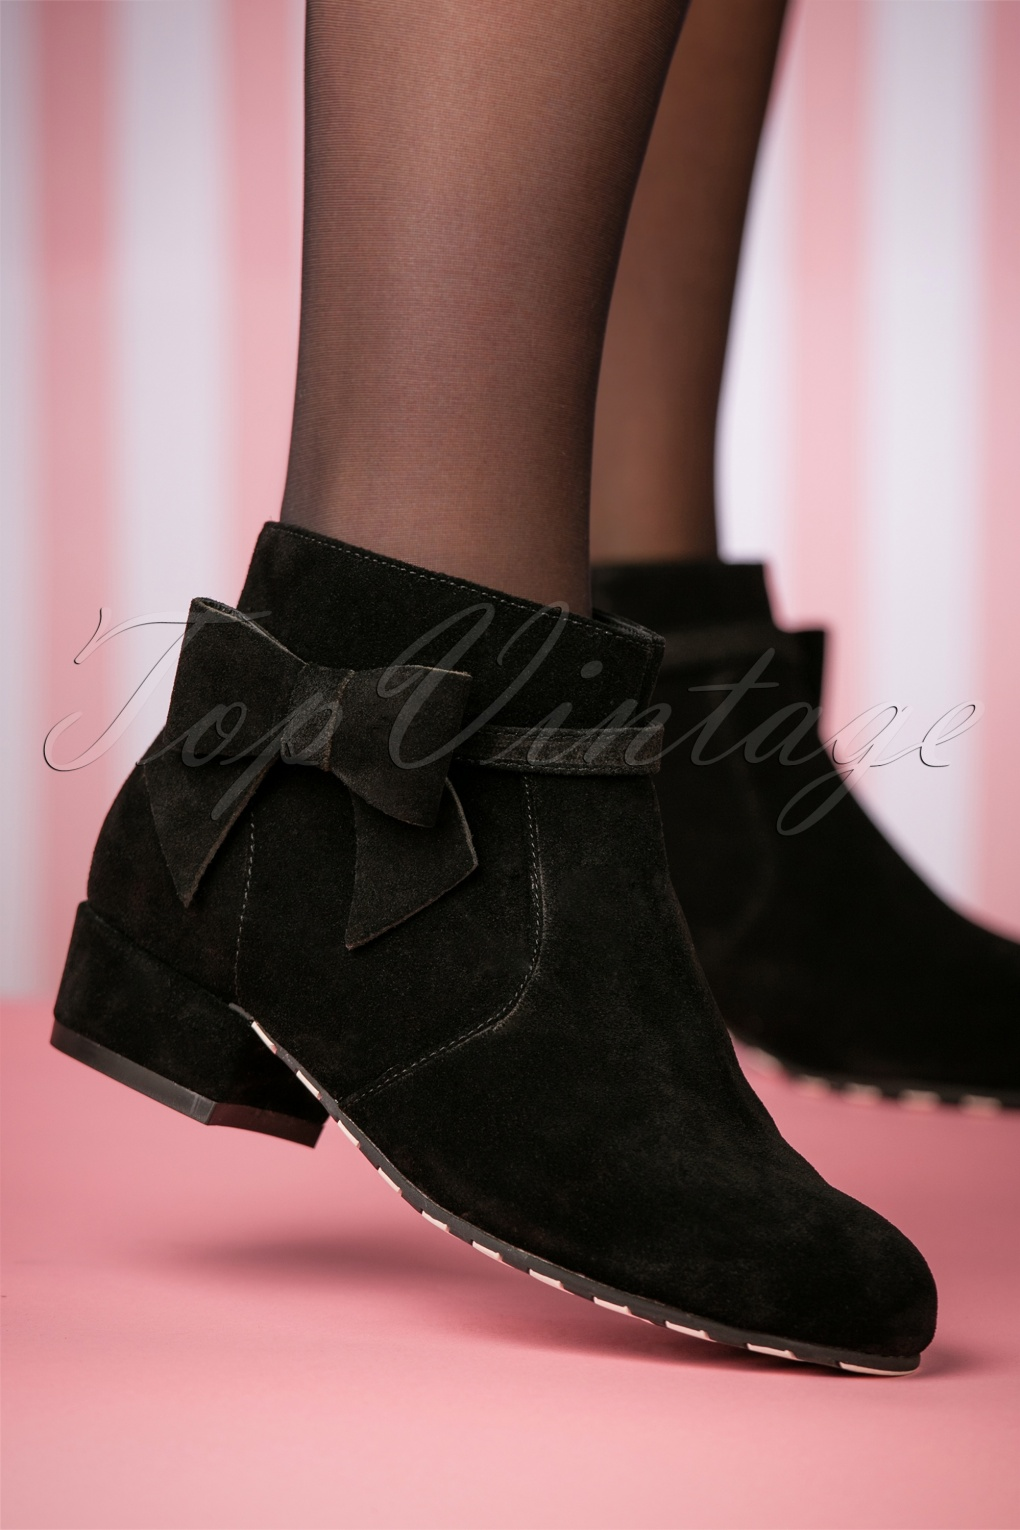 1950s Style Shoes | Heels, Flats, Saddle Shoes 60s Alice Ankle Booties in Black £155.71 AT vintagedancer.com